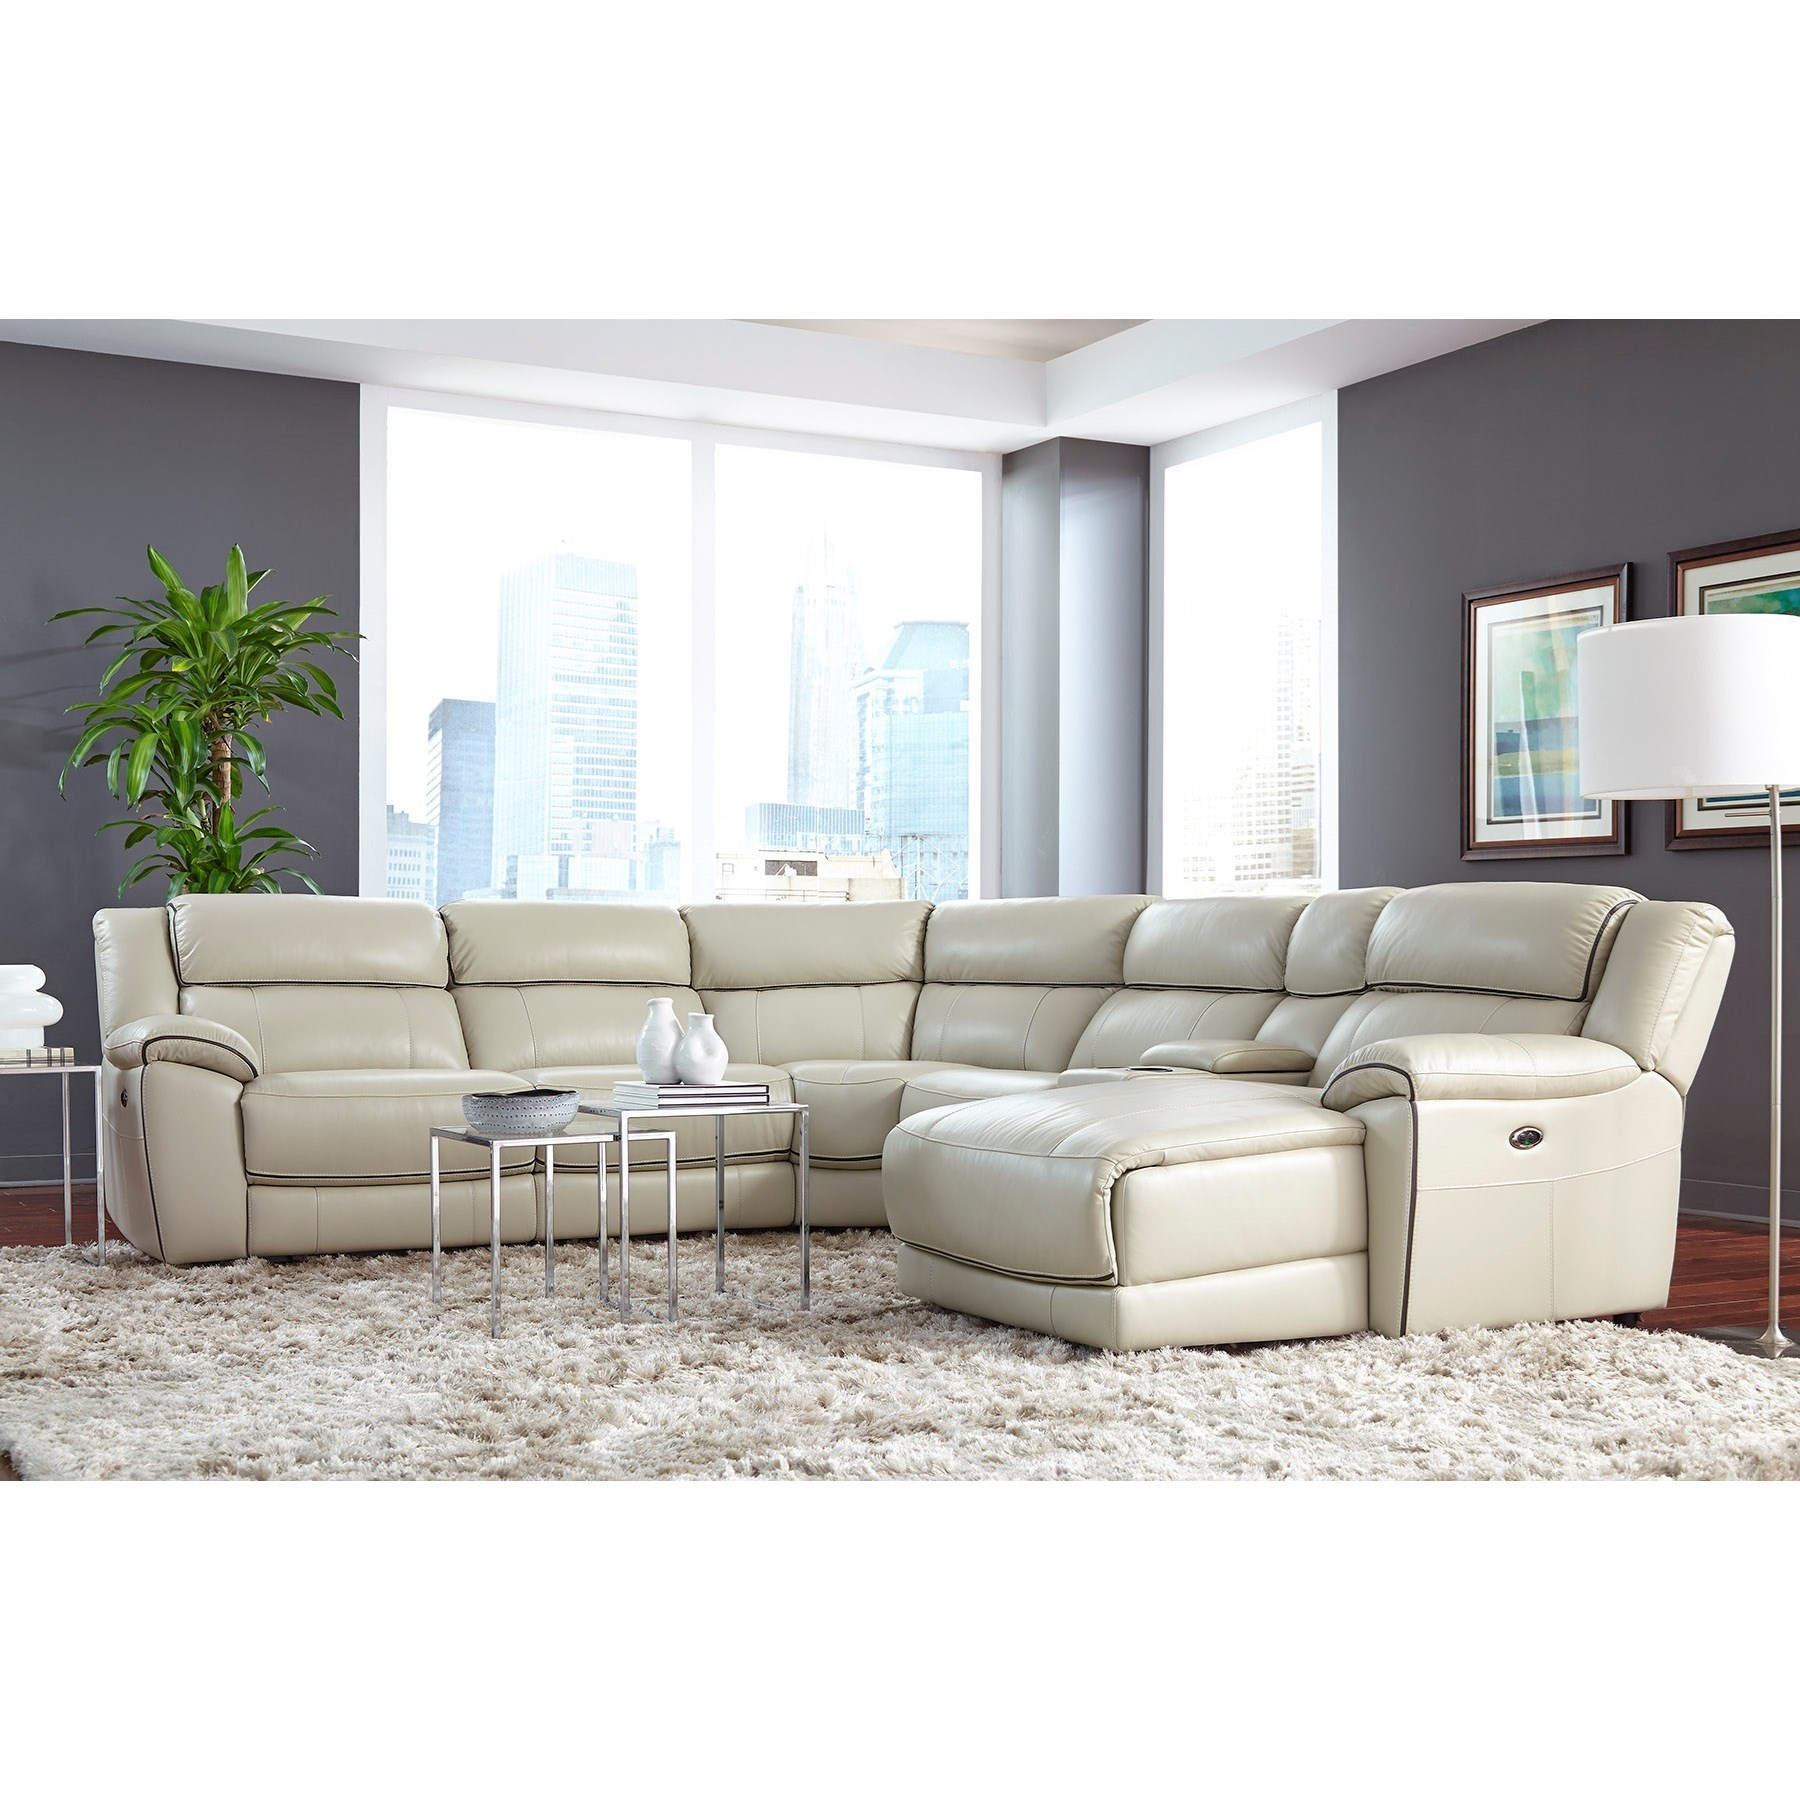 htl sofa range sofas u love reviews 10490 casual power reclining sectional with